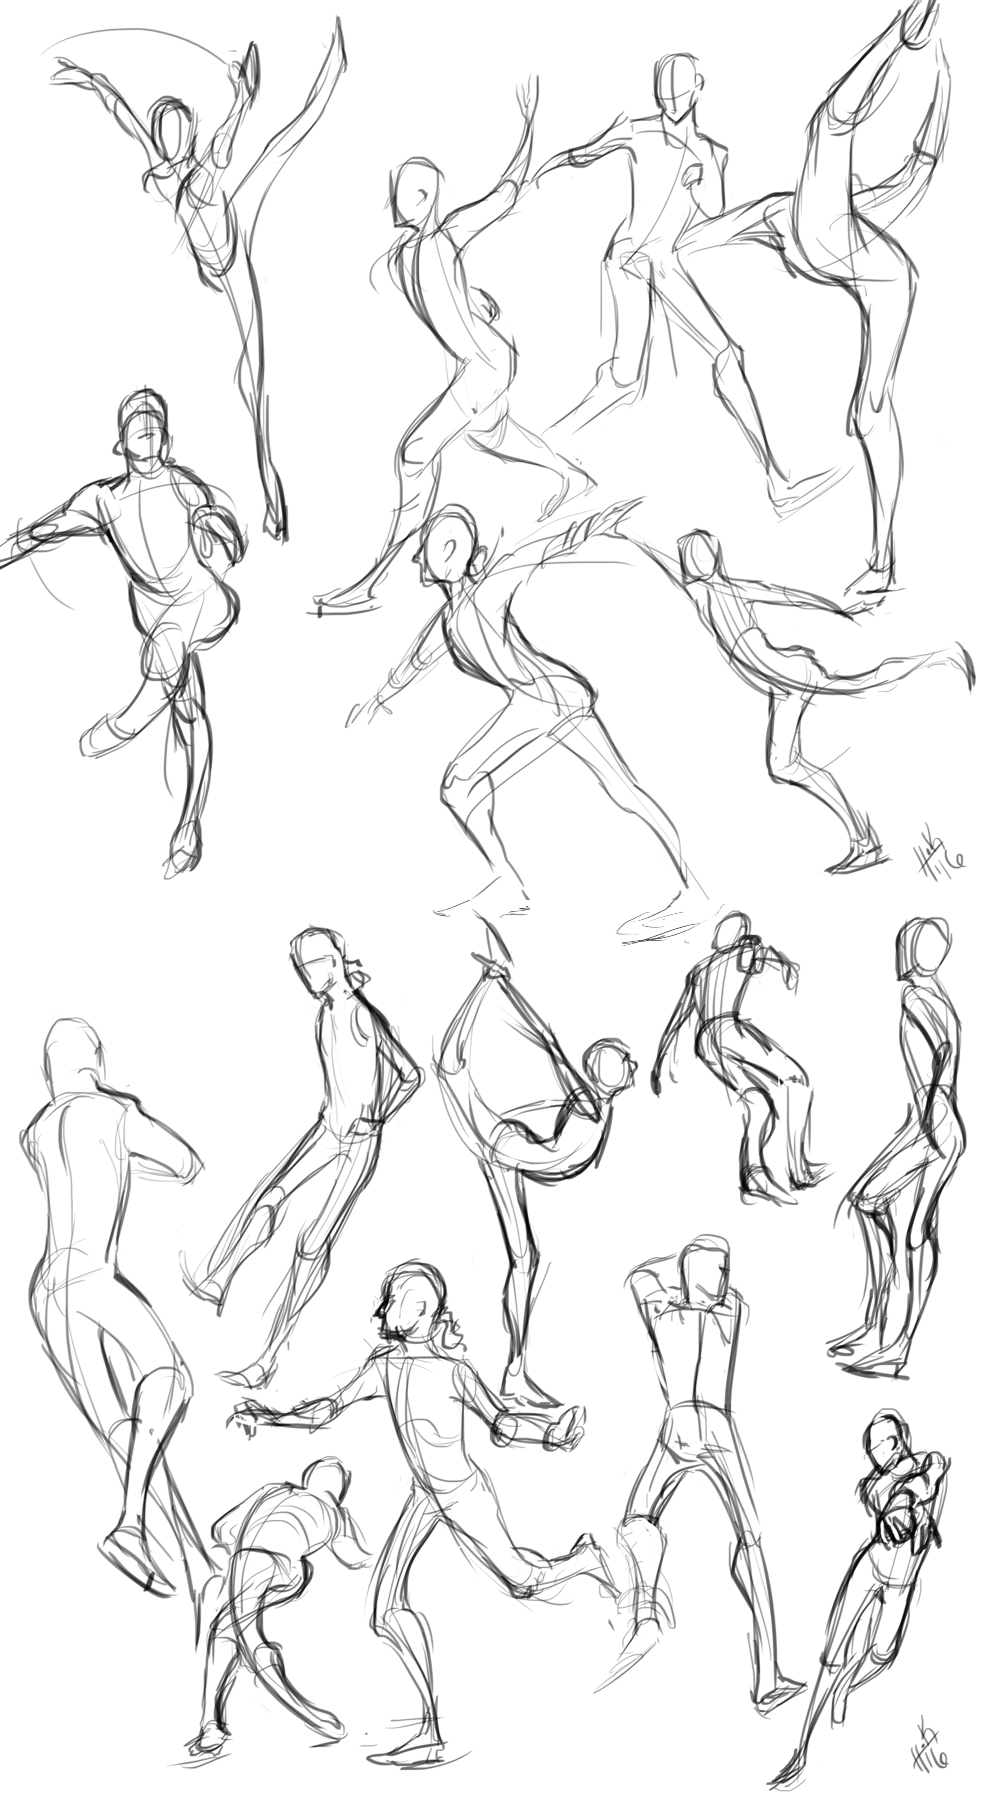 Skating figures by Tanize